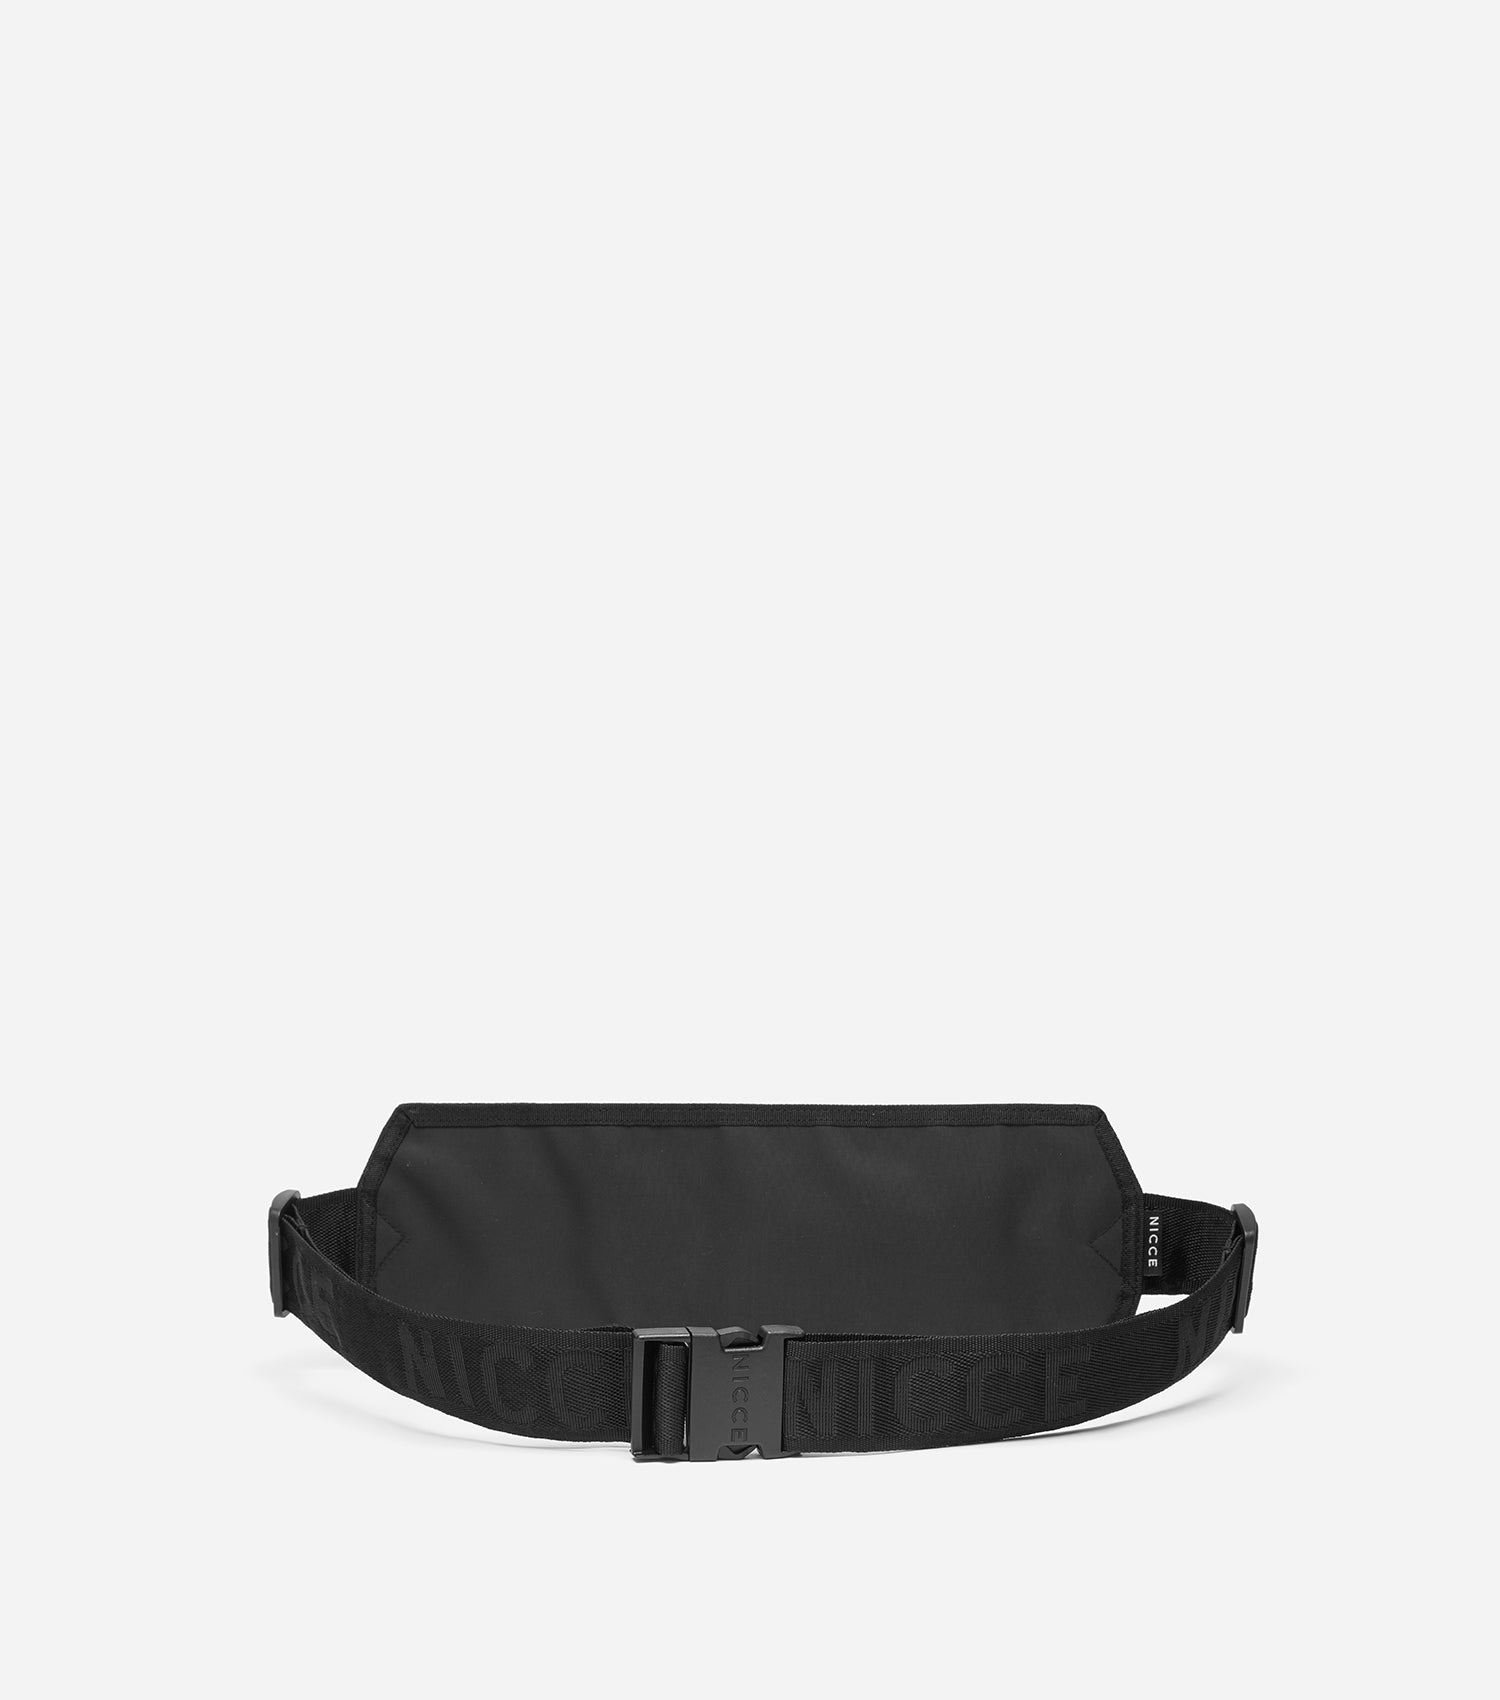 NICCE Orbit Bum Bag | Black, Bags